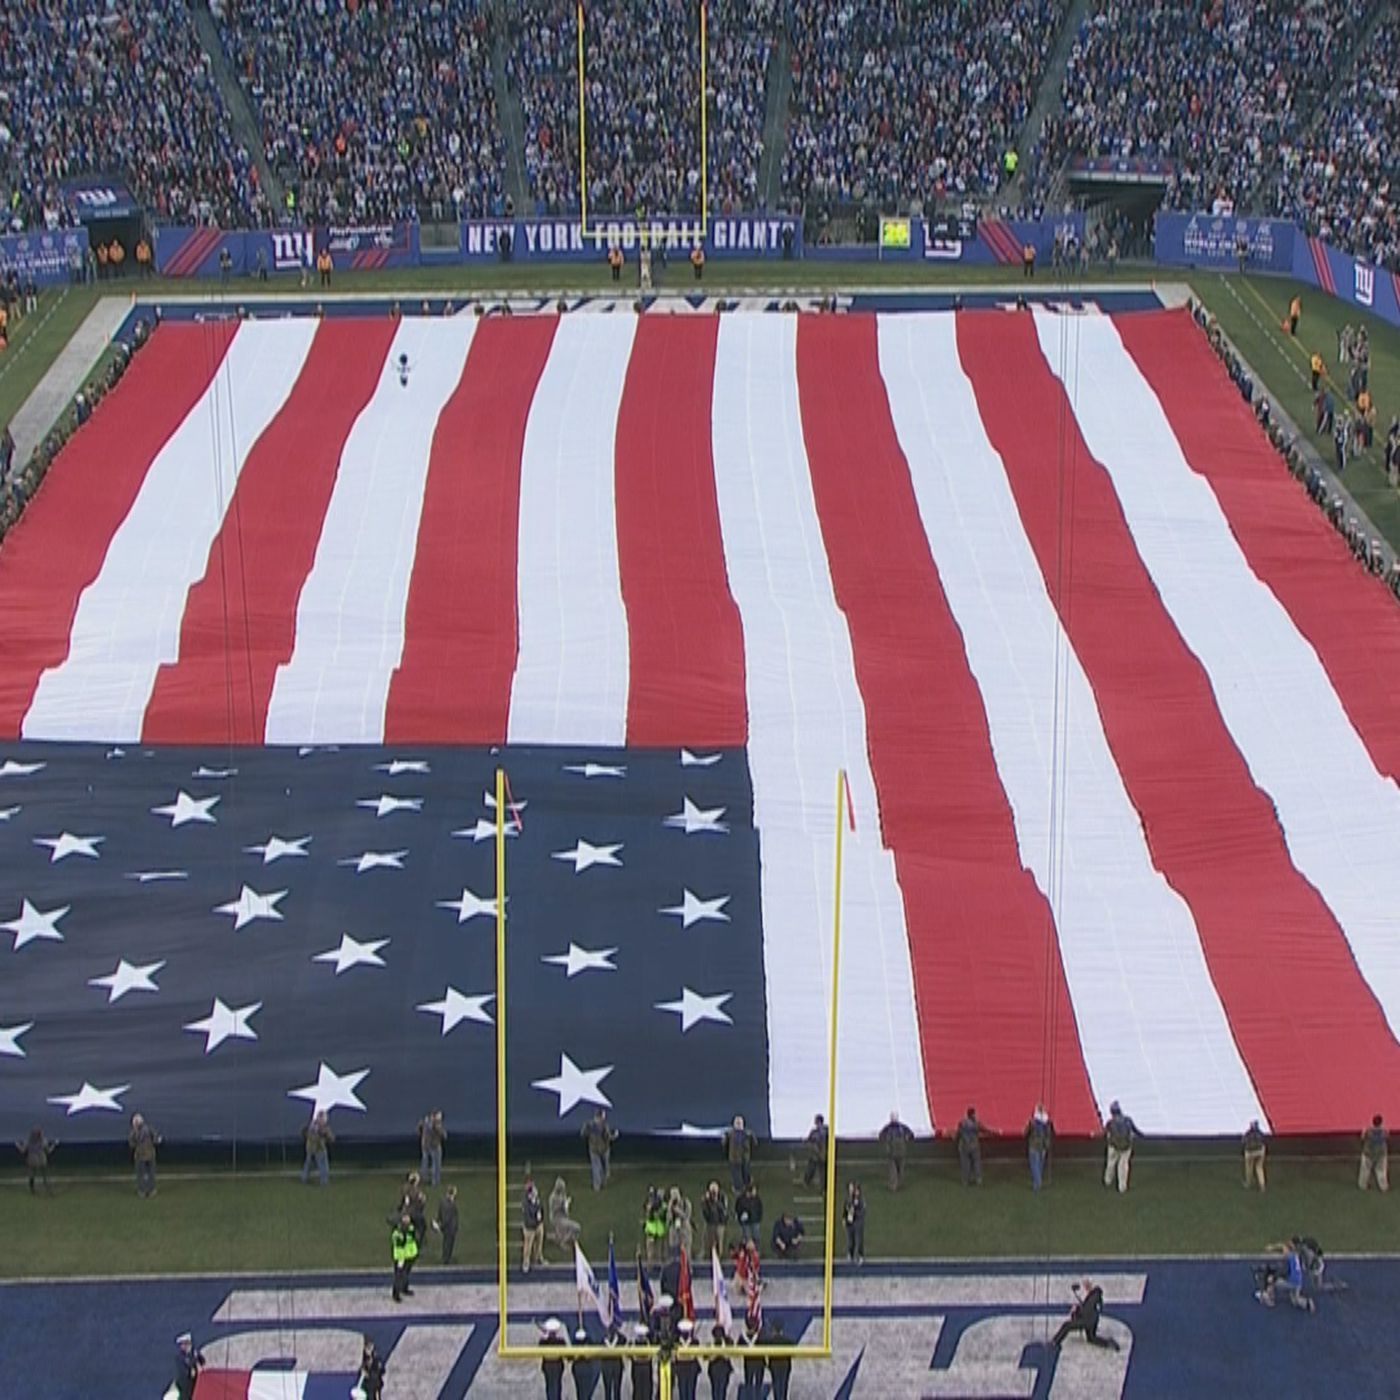 NFL Giant 4 foot by 6 foot Flag